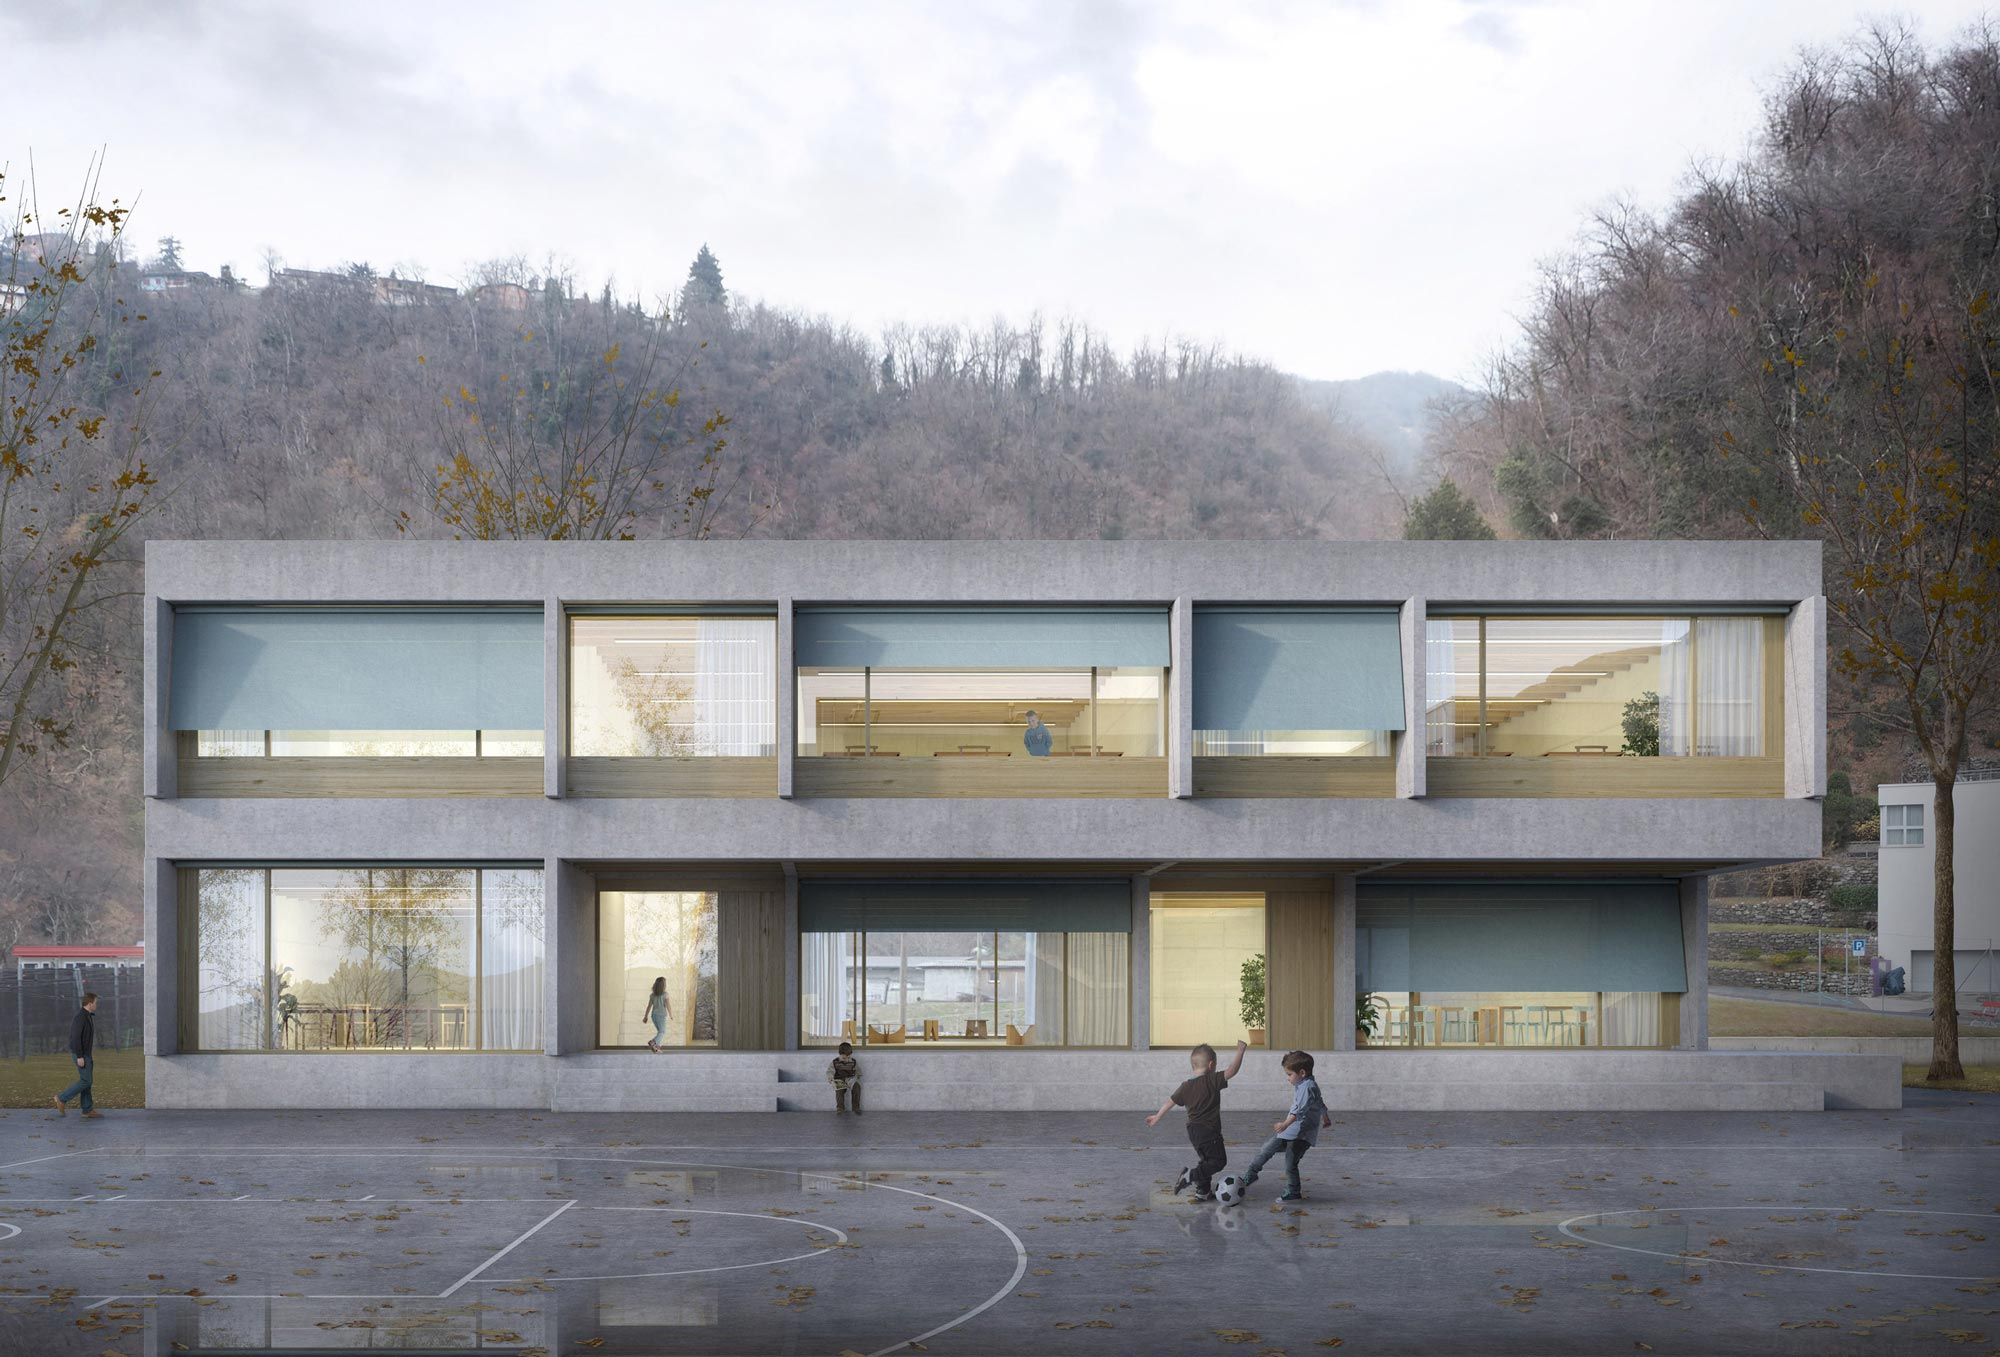 3rd Prize | Montemurro Aguiar Architetti | Competition for a school extension, Melano (CH)